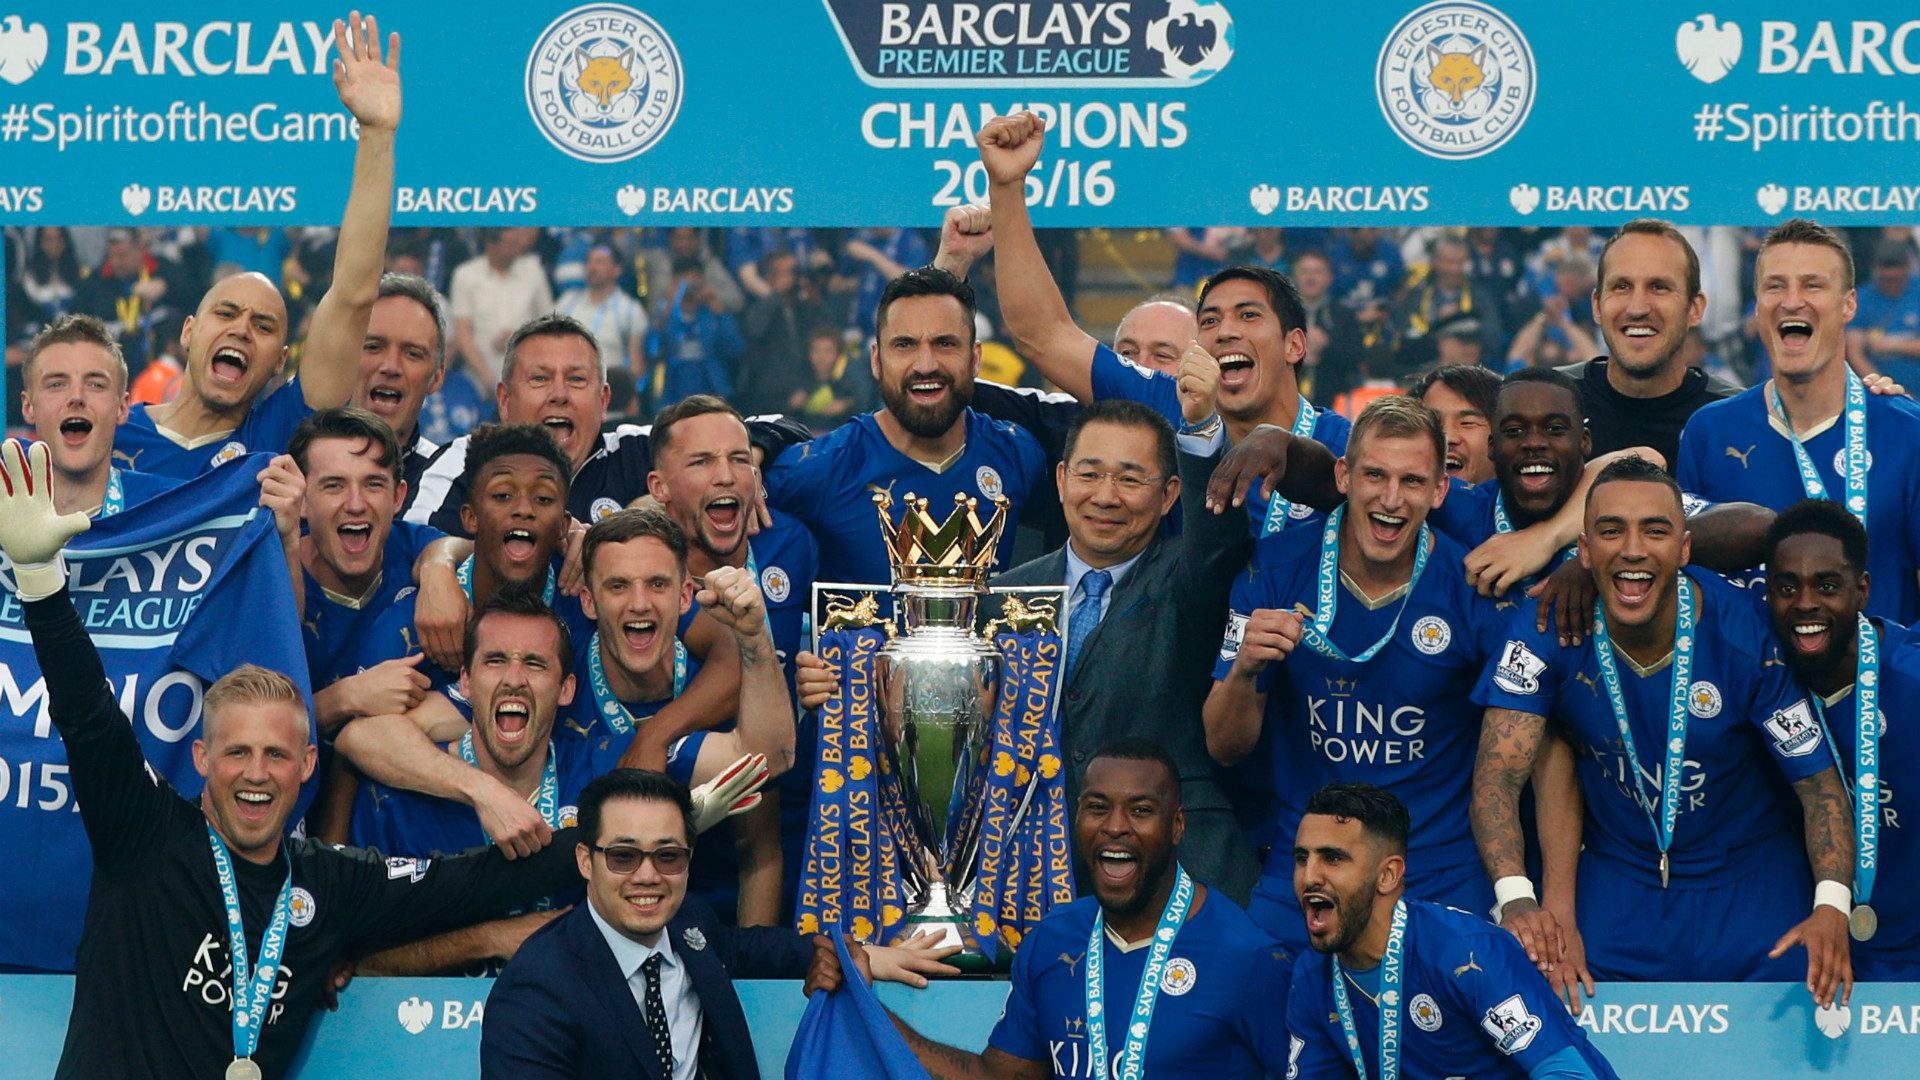 Leicester City 2016 Premier League champions